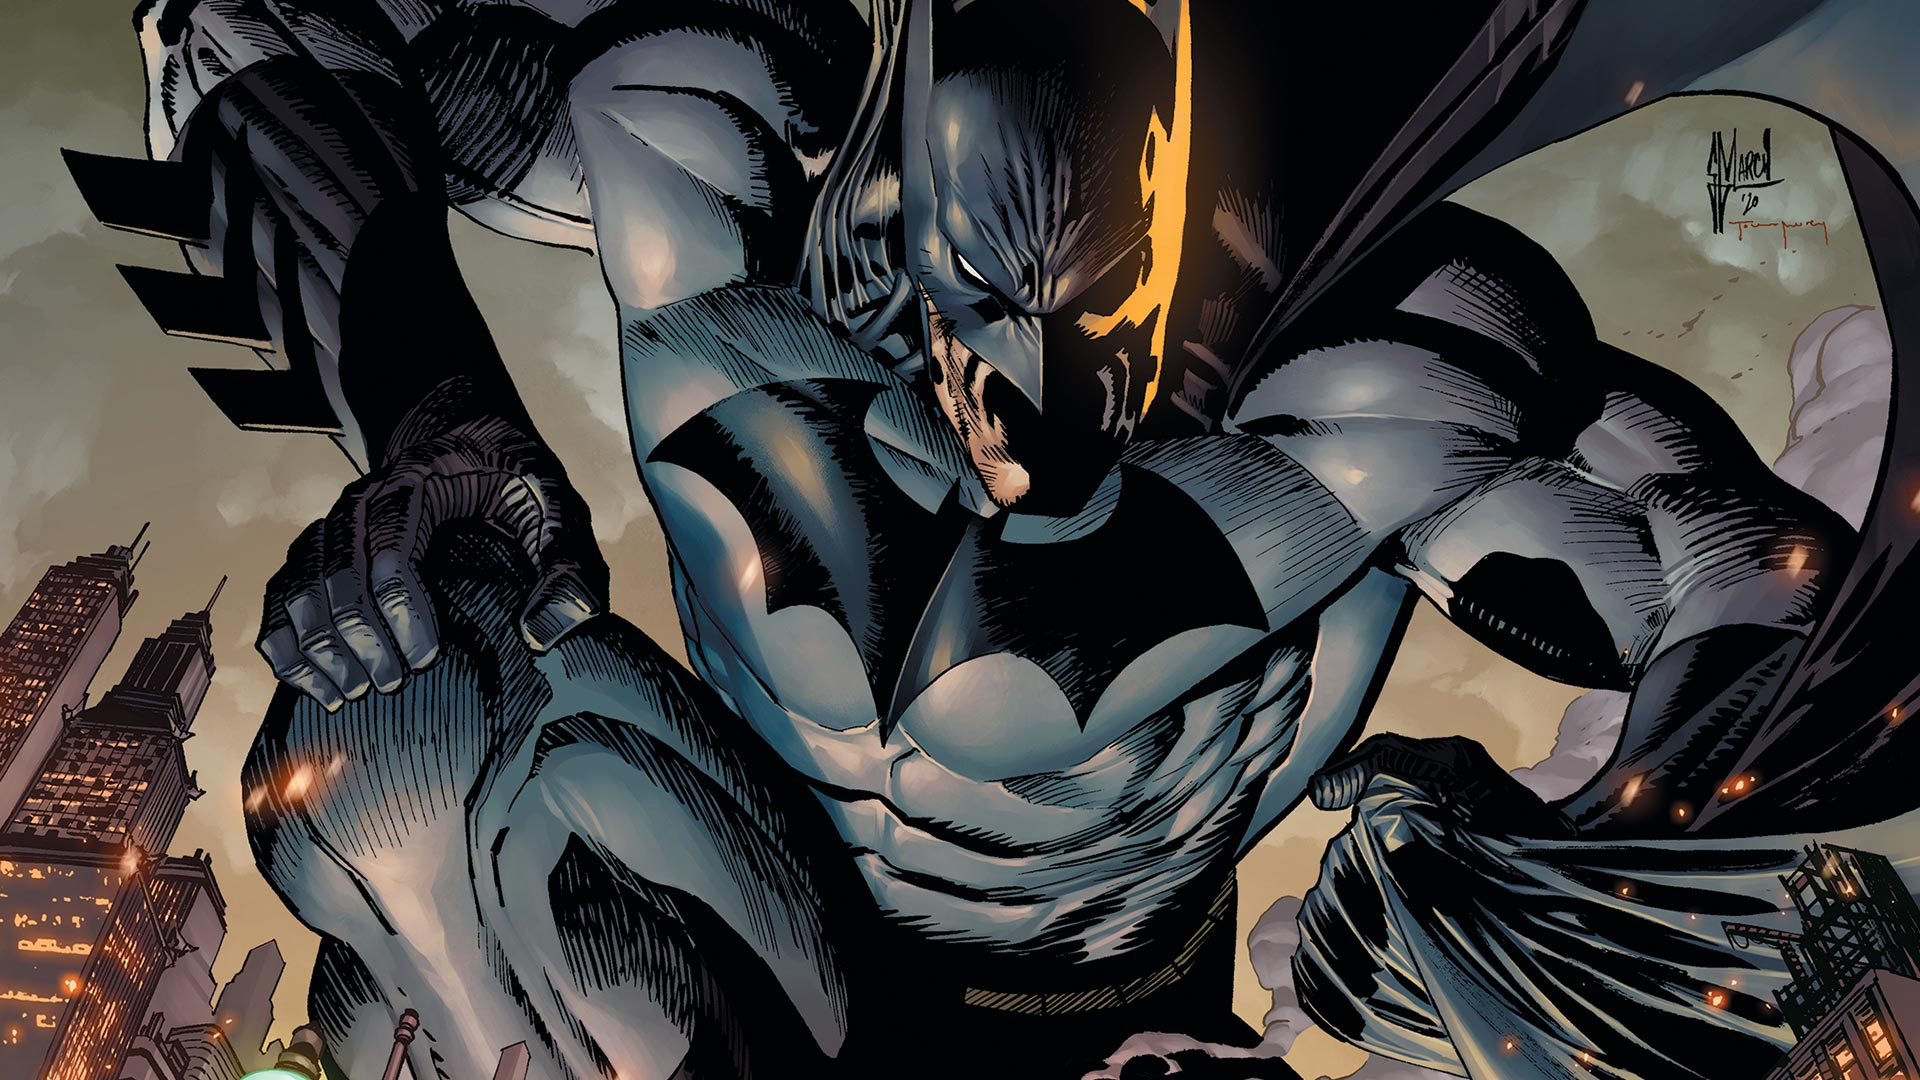 Batman: Death in the Family Reveals the Challenges of Choice